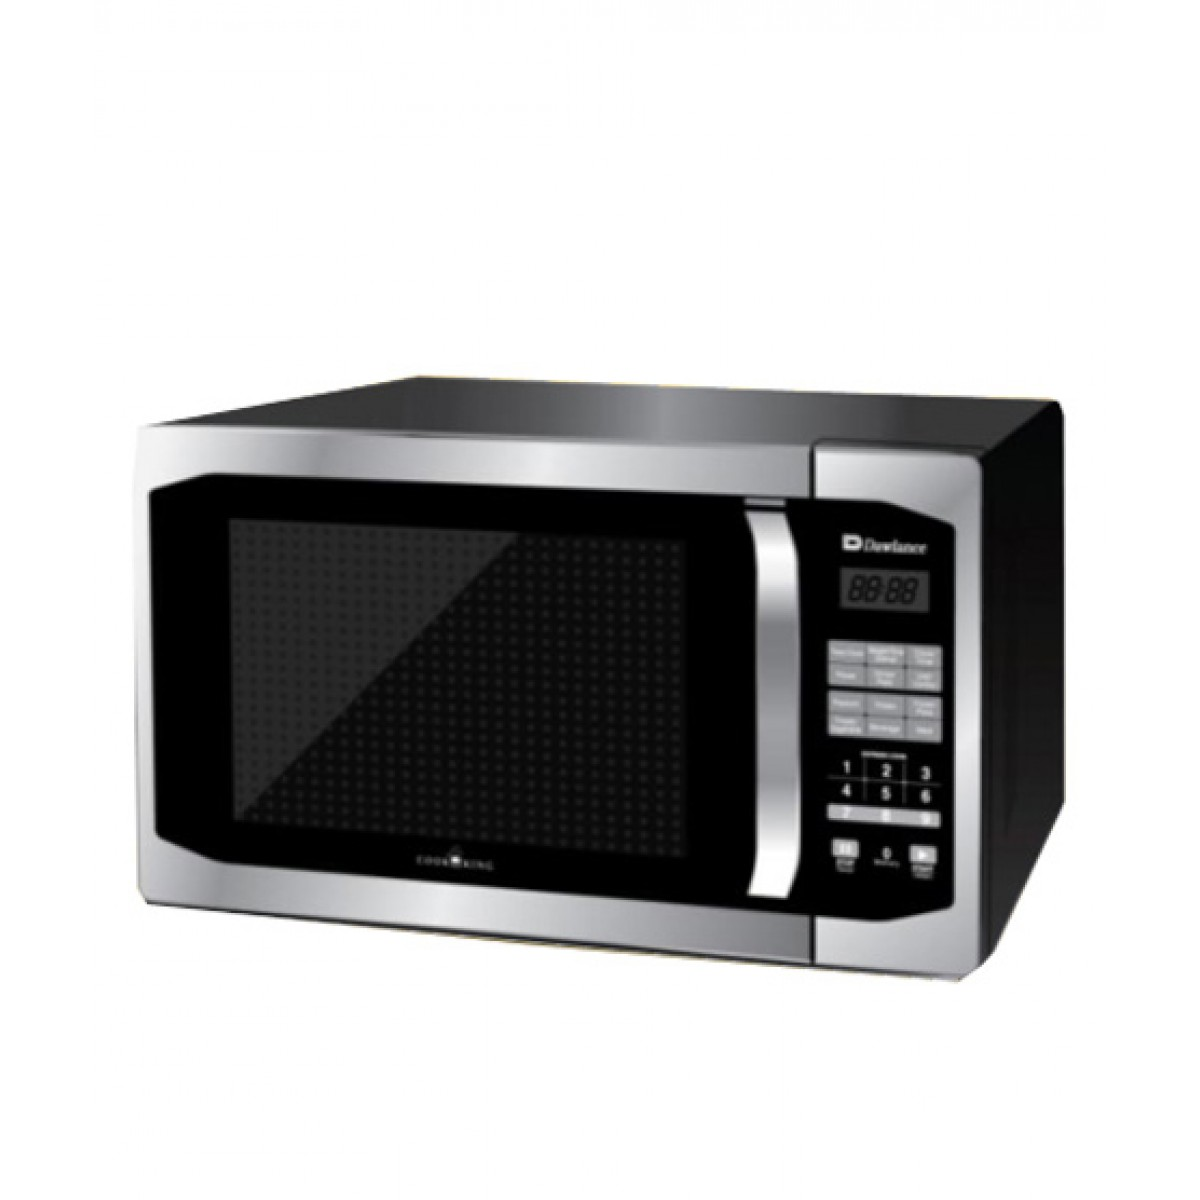 Dawlance Microwave Oven With Grill